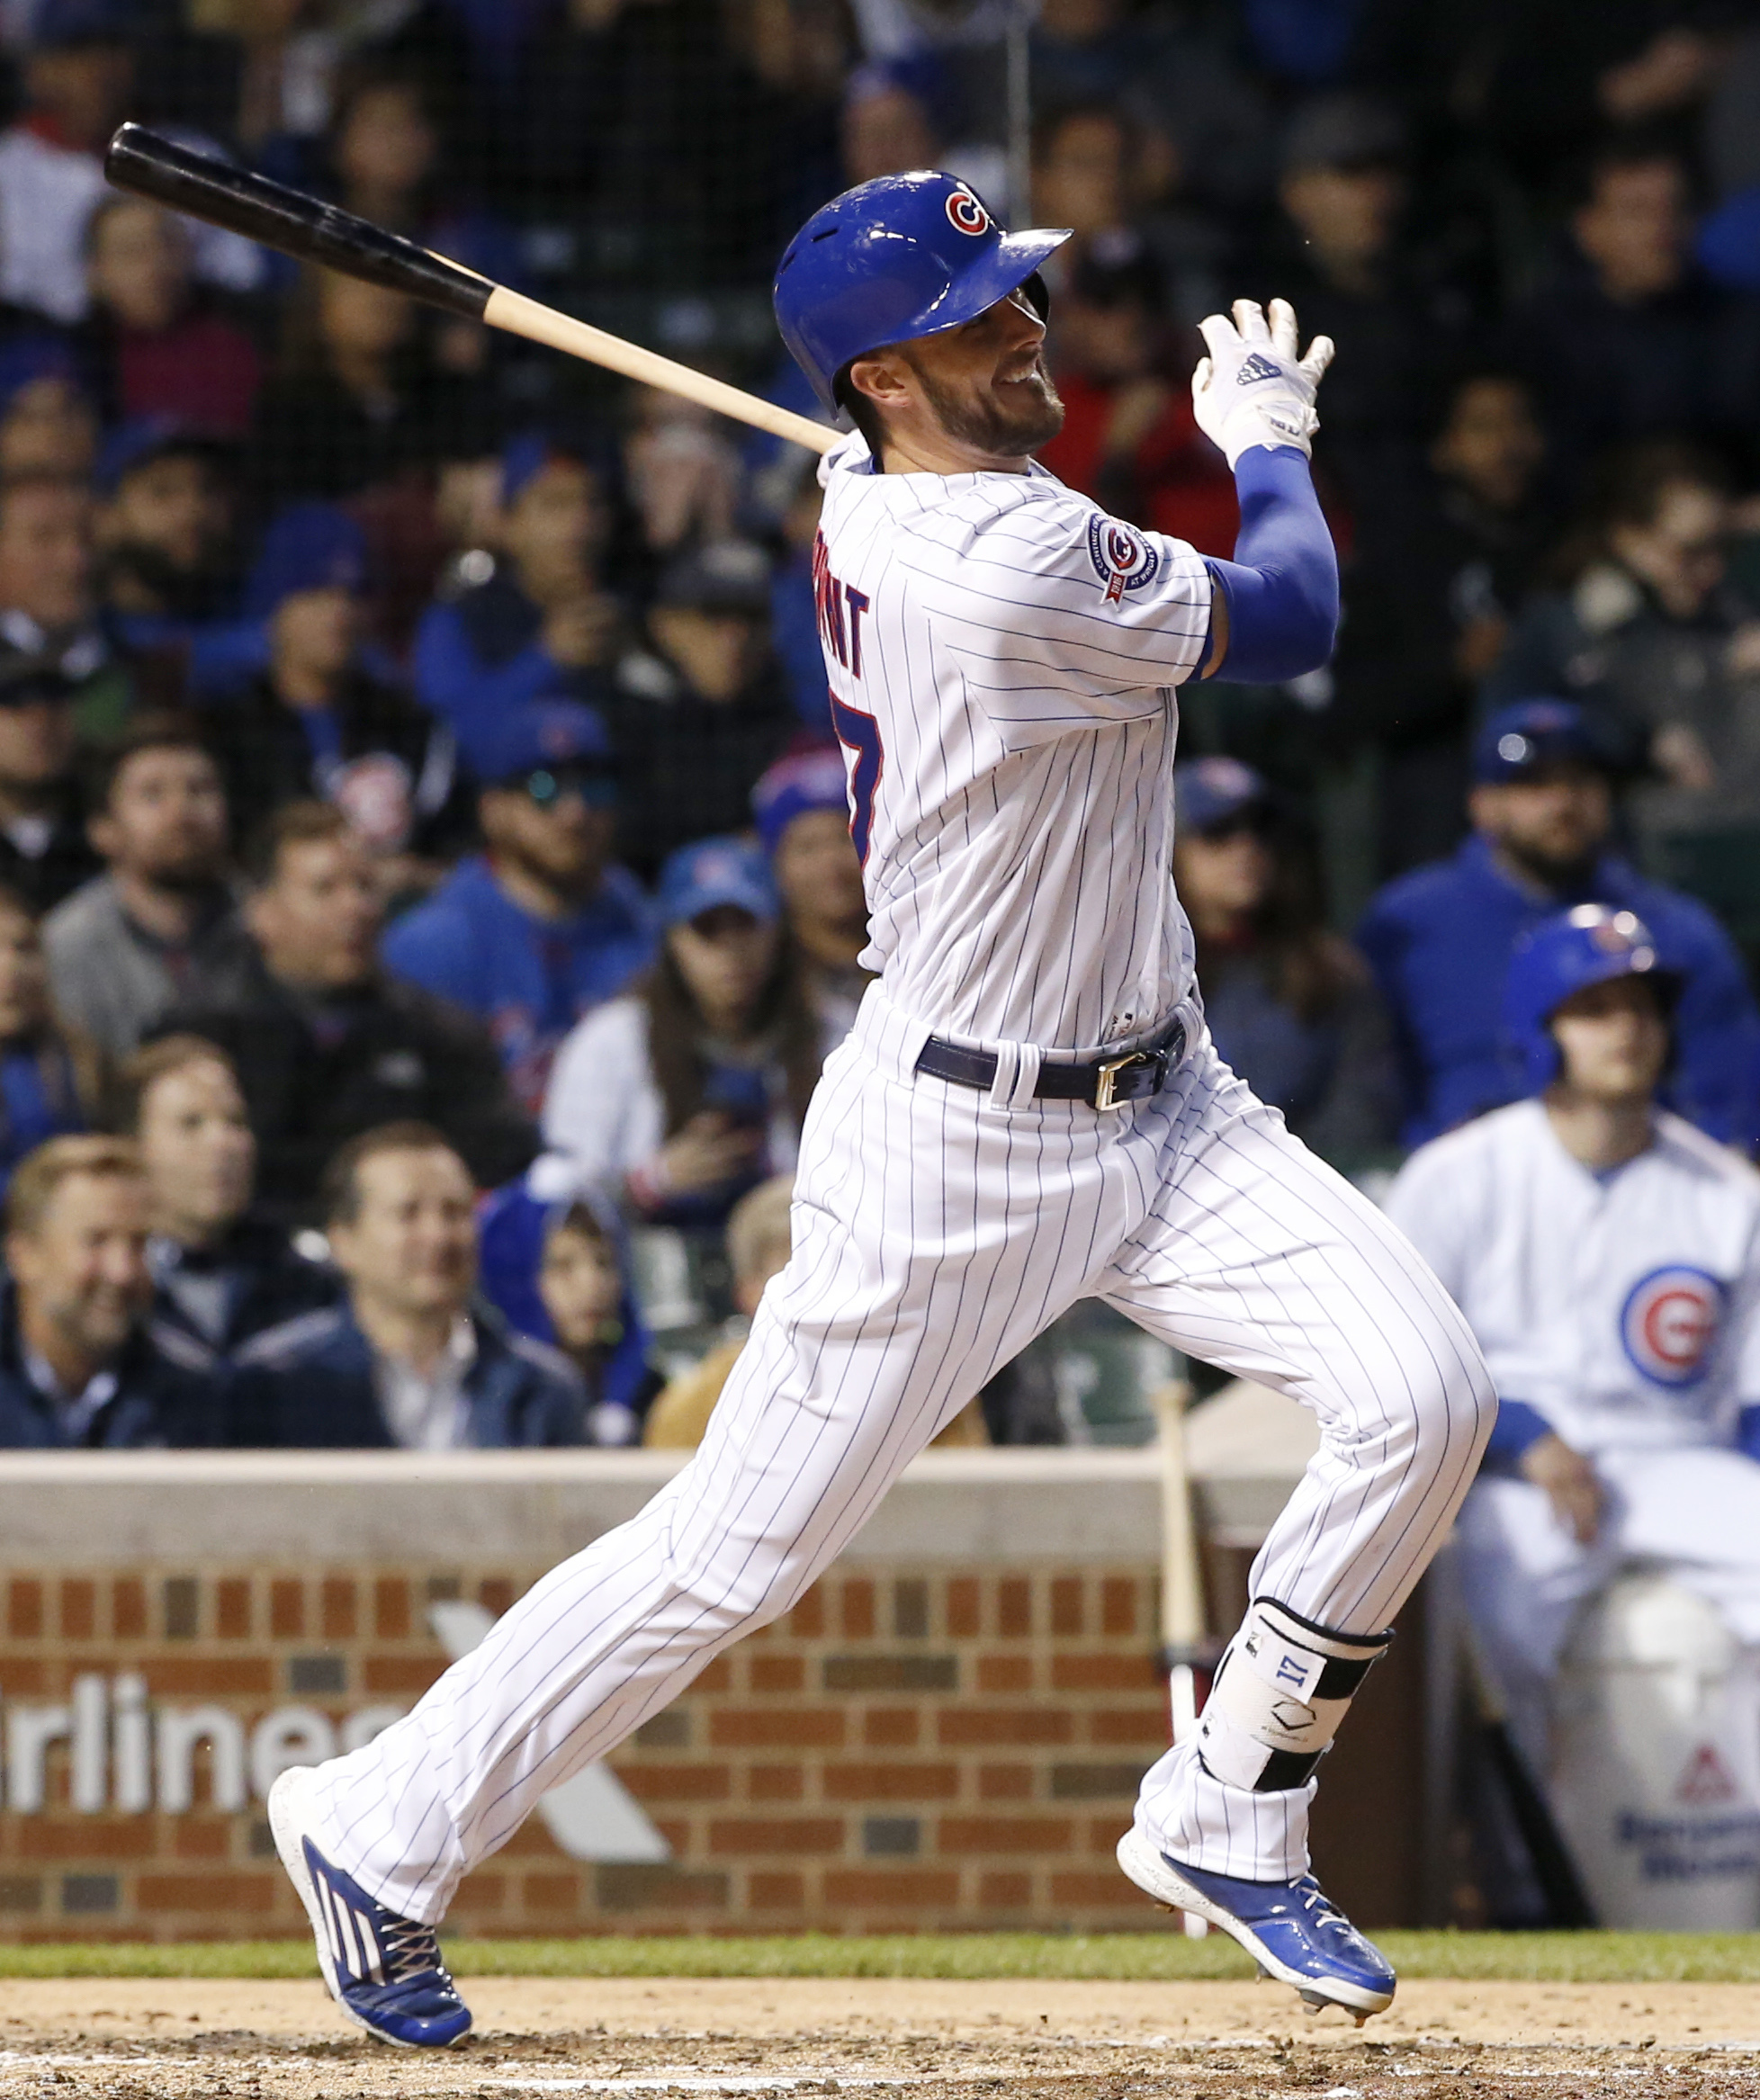 FILE - In this May 5, 2016, file photo, Chicago Cubs' Kris Bryant hits a ground-rule double  during the fourth inning of a baseball game against the Washington Nationals in Chicago. For all the towering home runs he hit last season on the way to the NL Ro